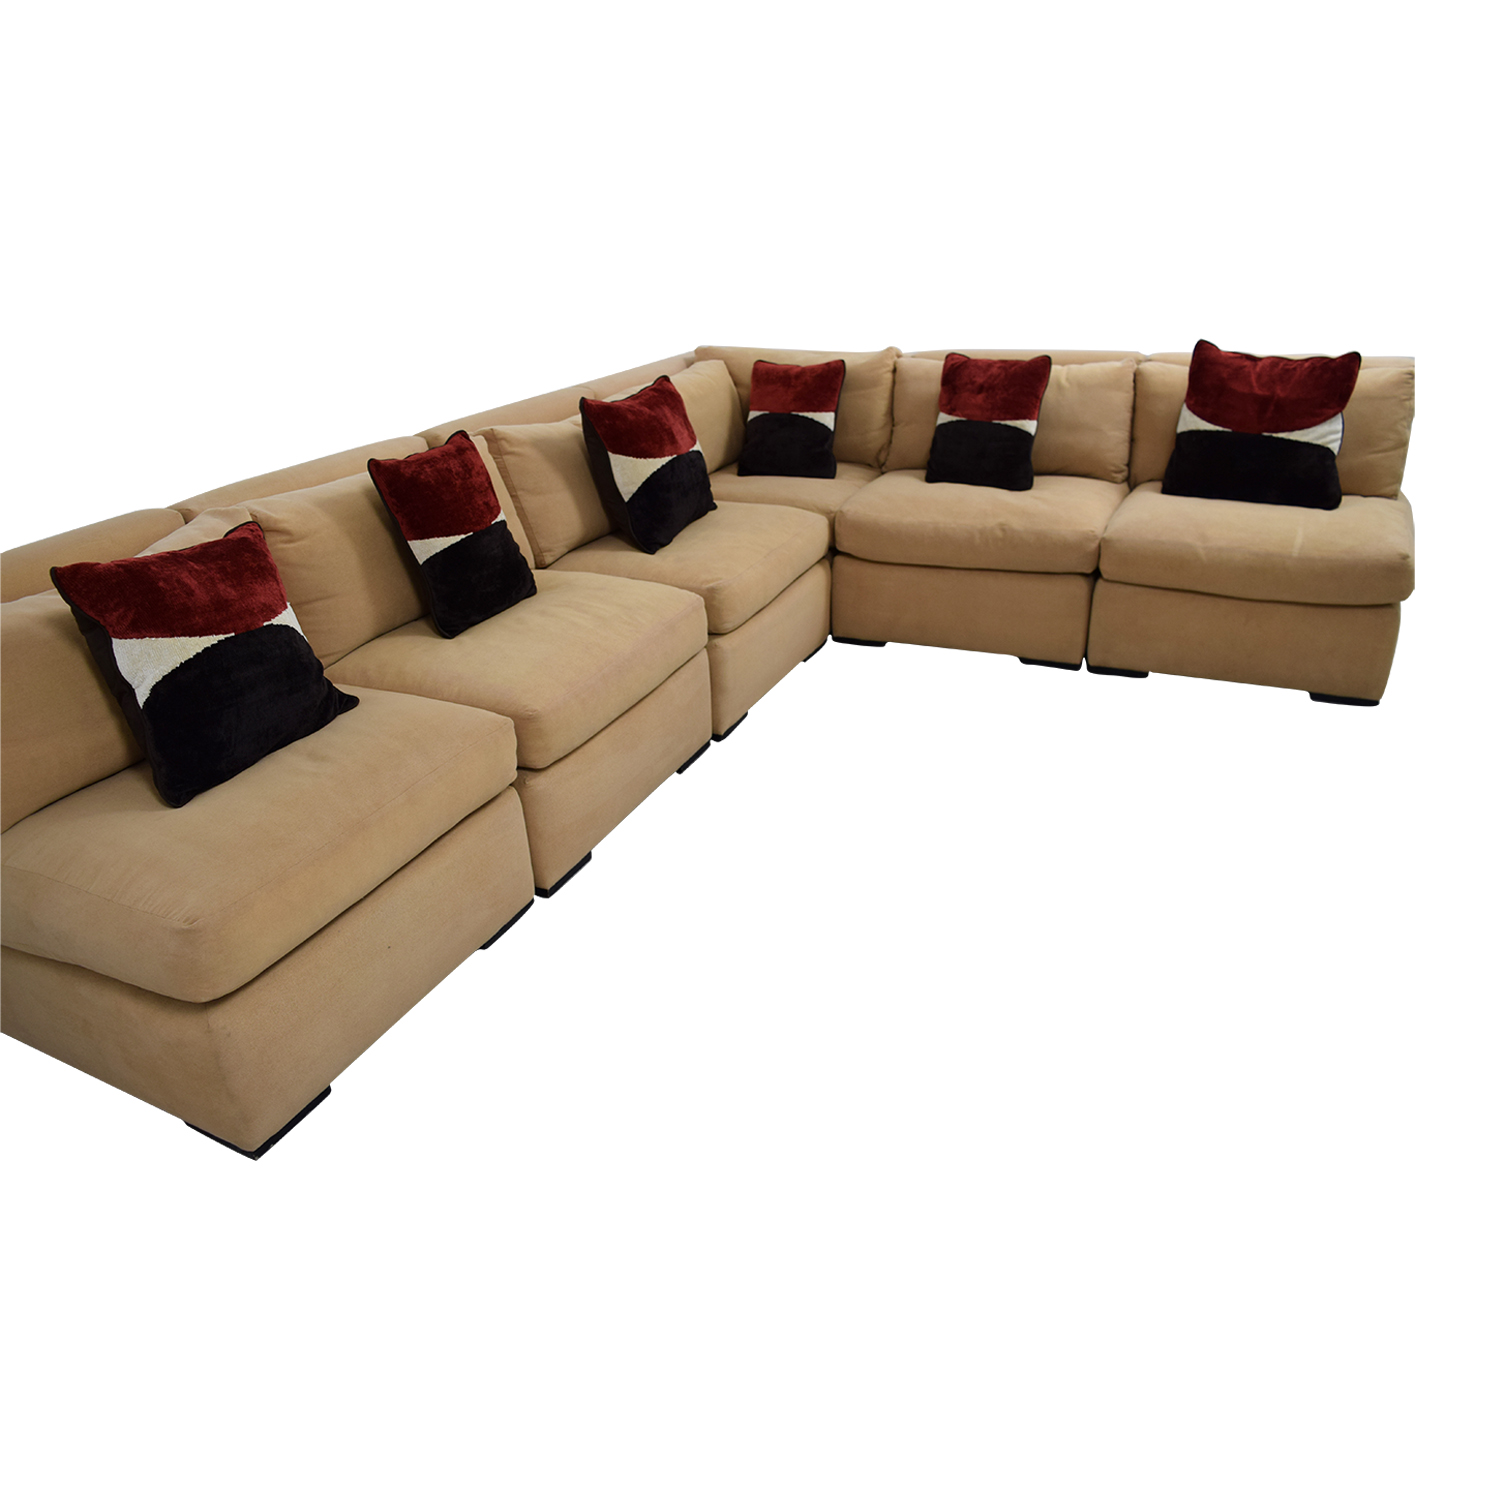 Mambo Big Sofa Kreiss Sofa Sectional Taraba Home Review